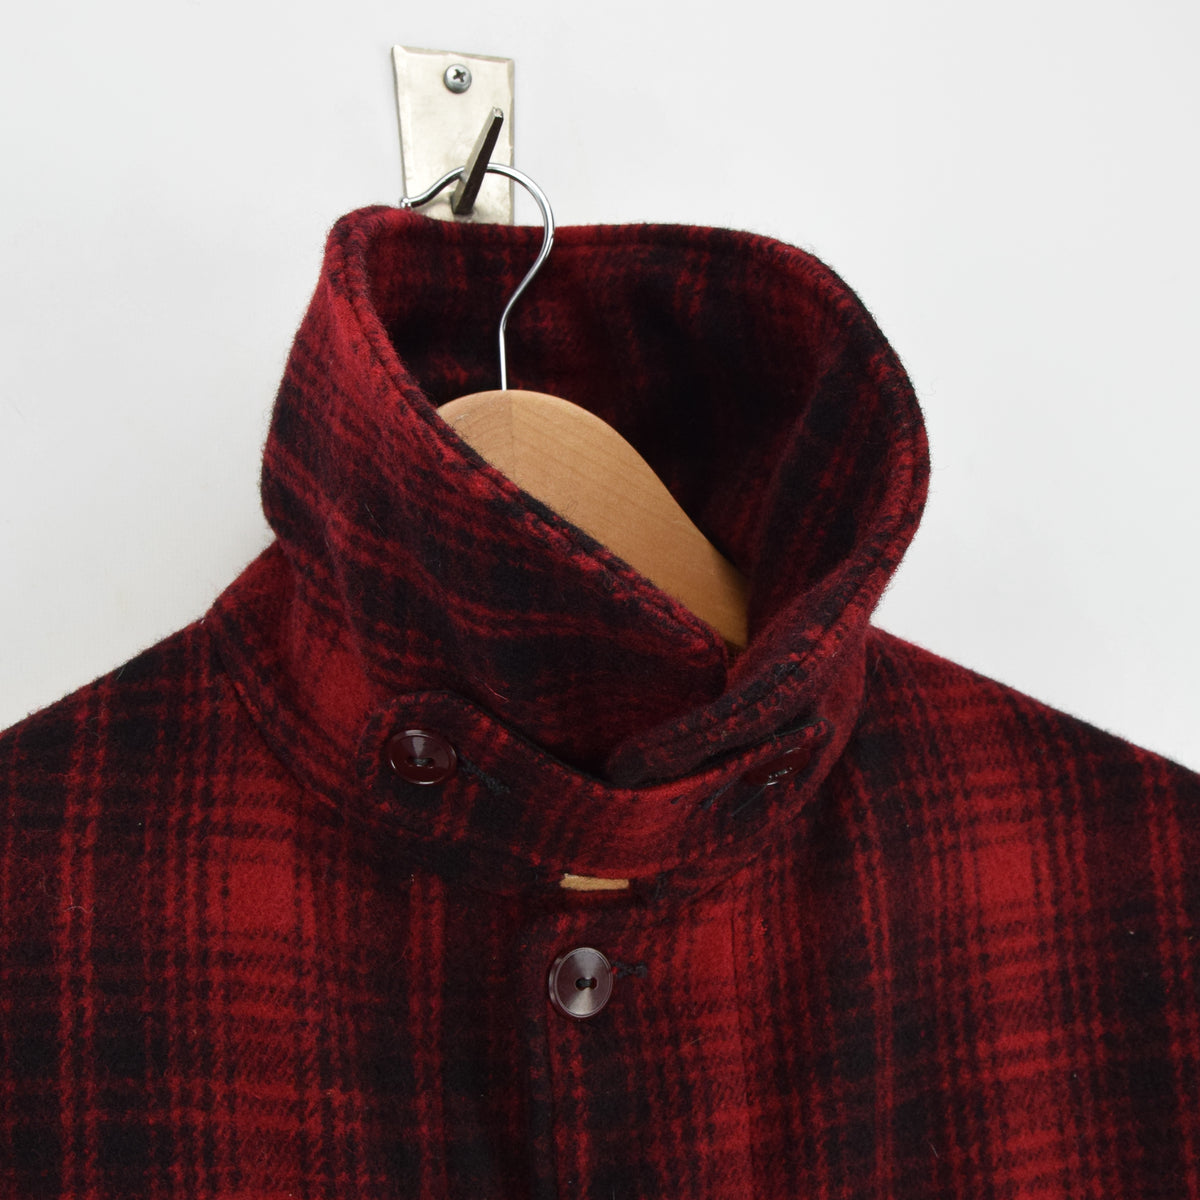 Vintage 70s Woolrich Buffalo Plaid Mackinaw Hunting Cruiser Jacket Made in USA L collar